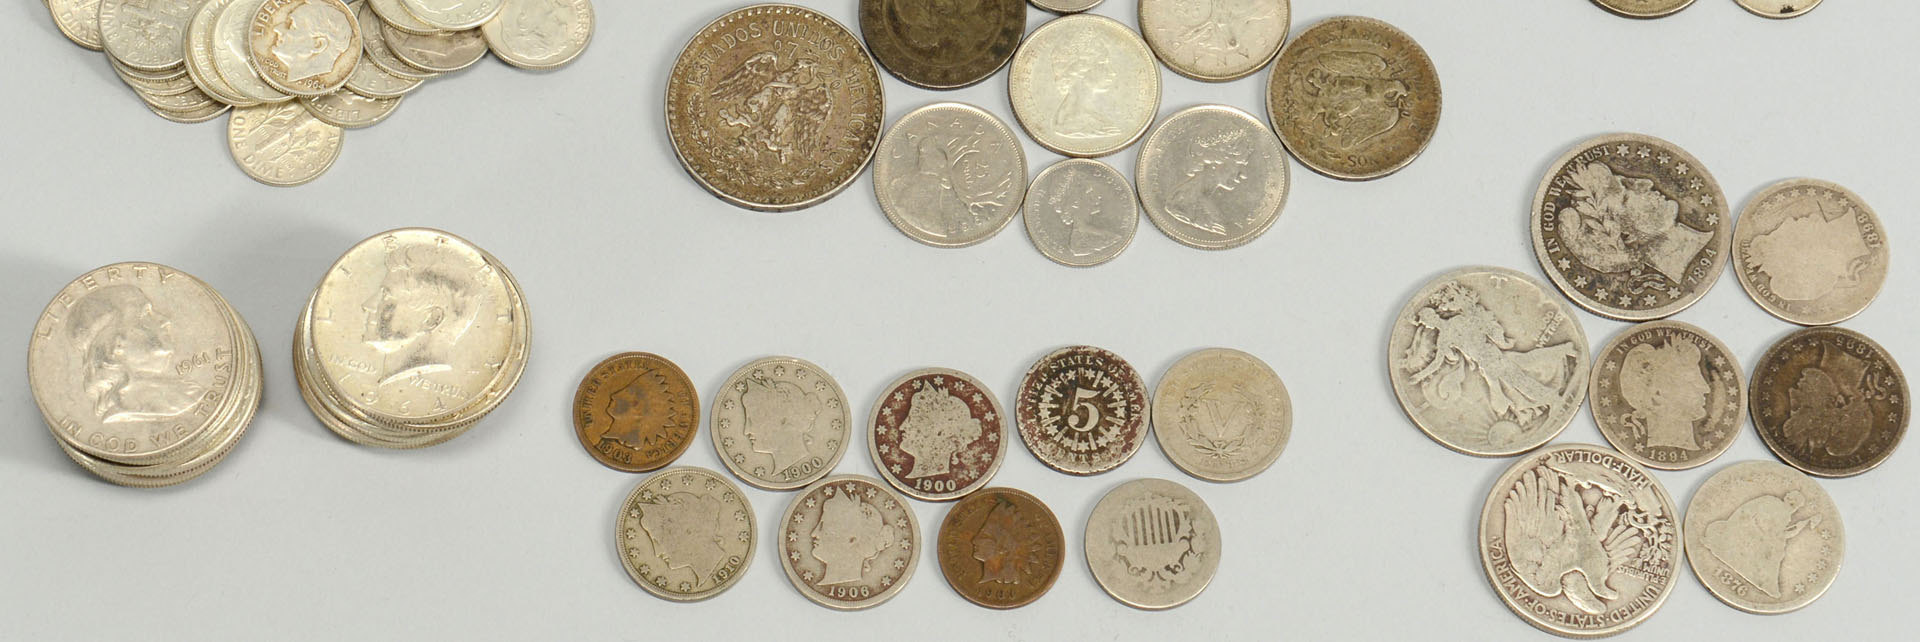 Lot 528: Large Grouping of Assorted Silver Coins